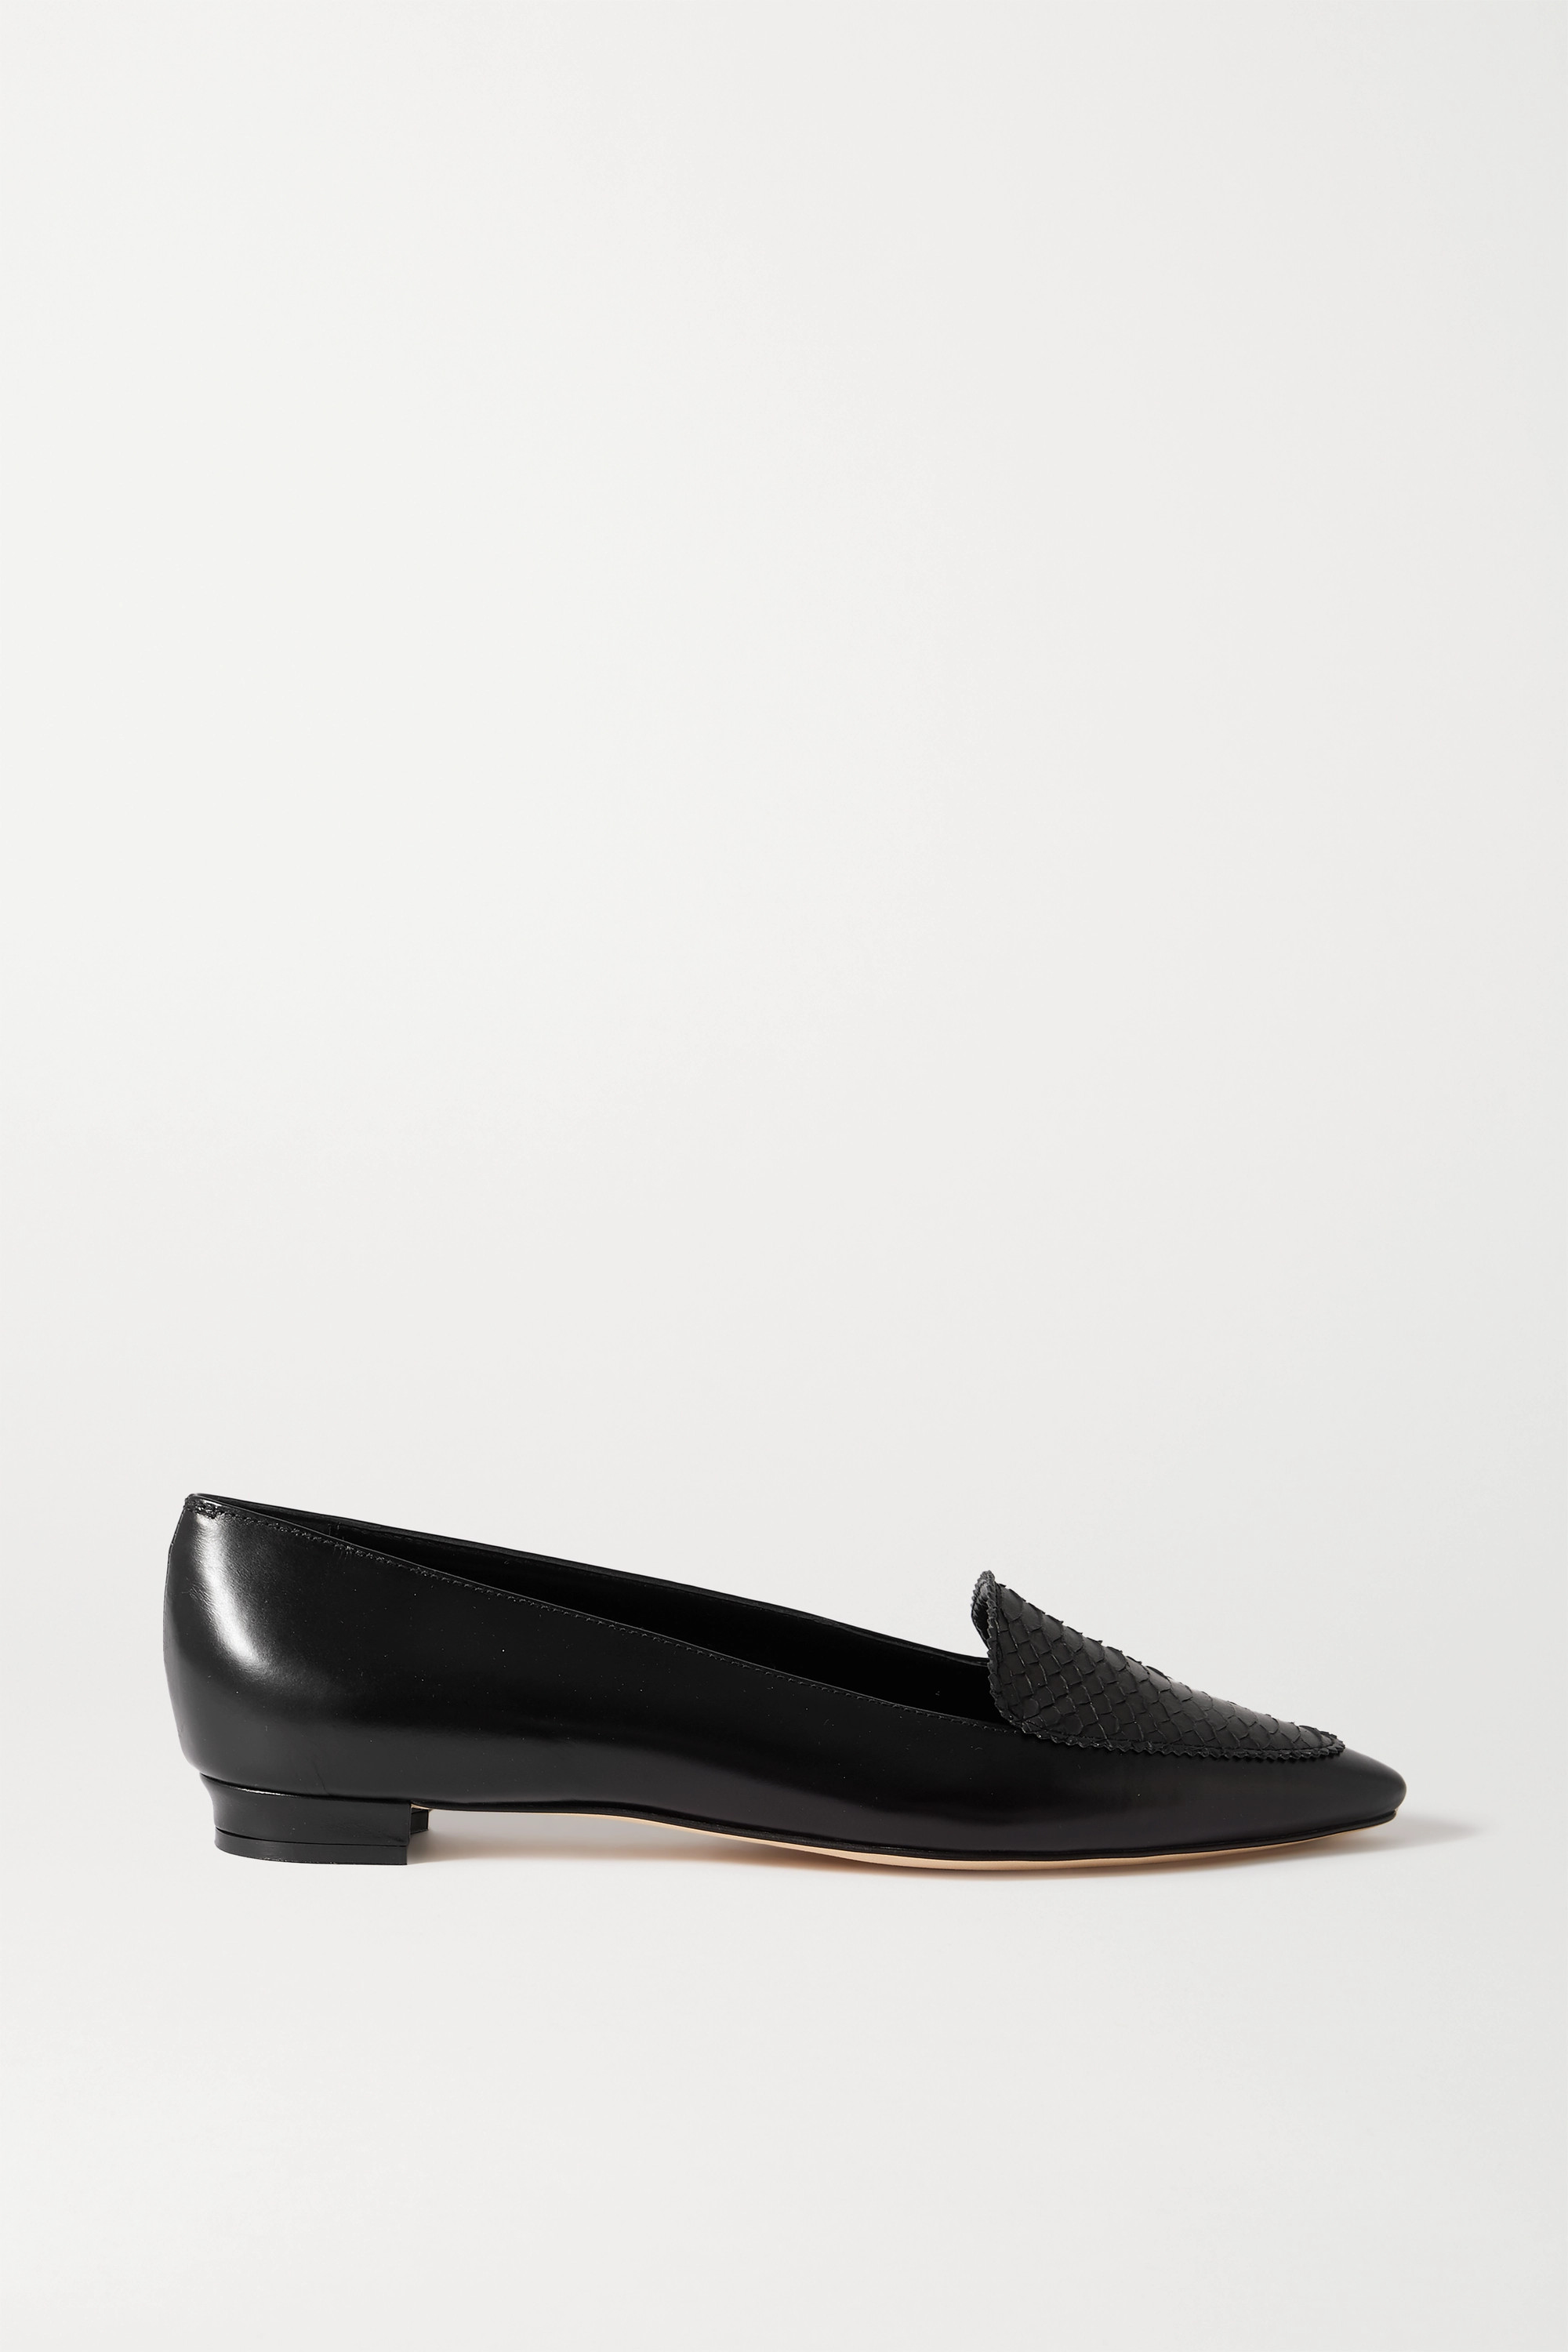 Manolo Blahnik Agos leather and watersnake loafers